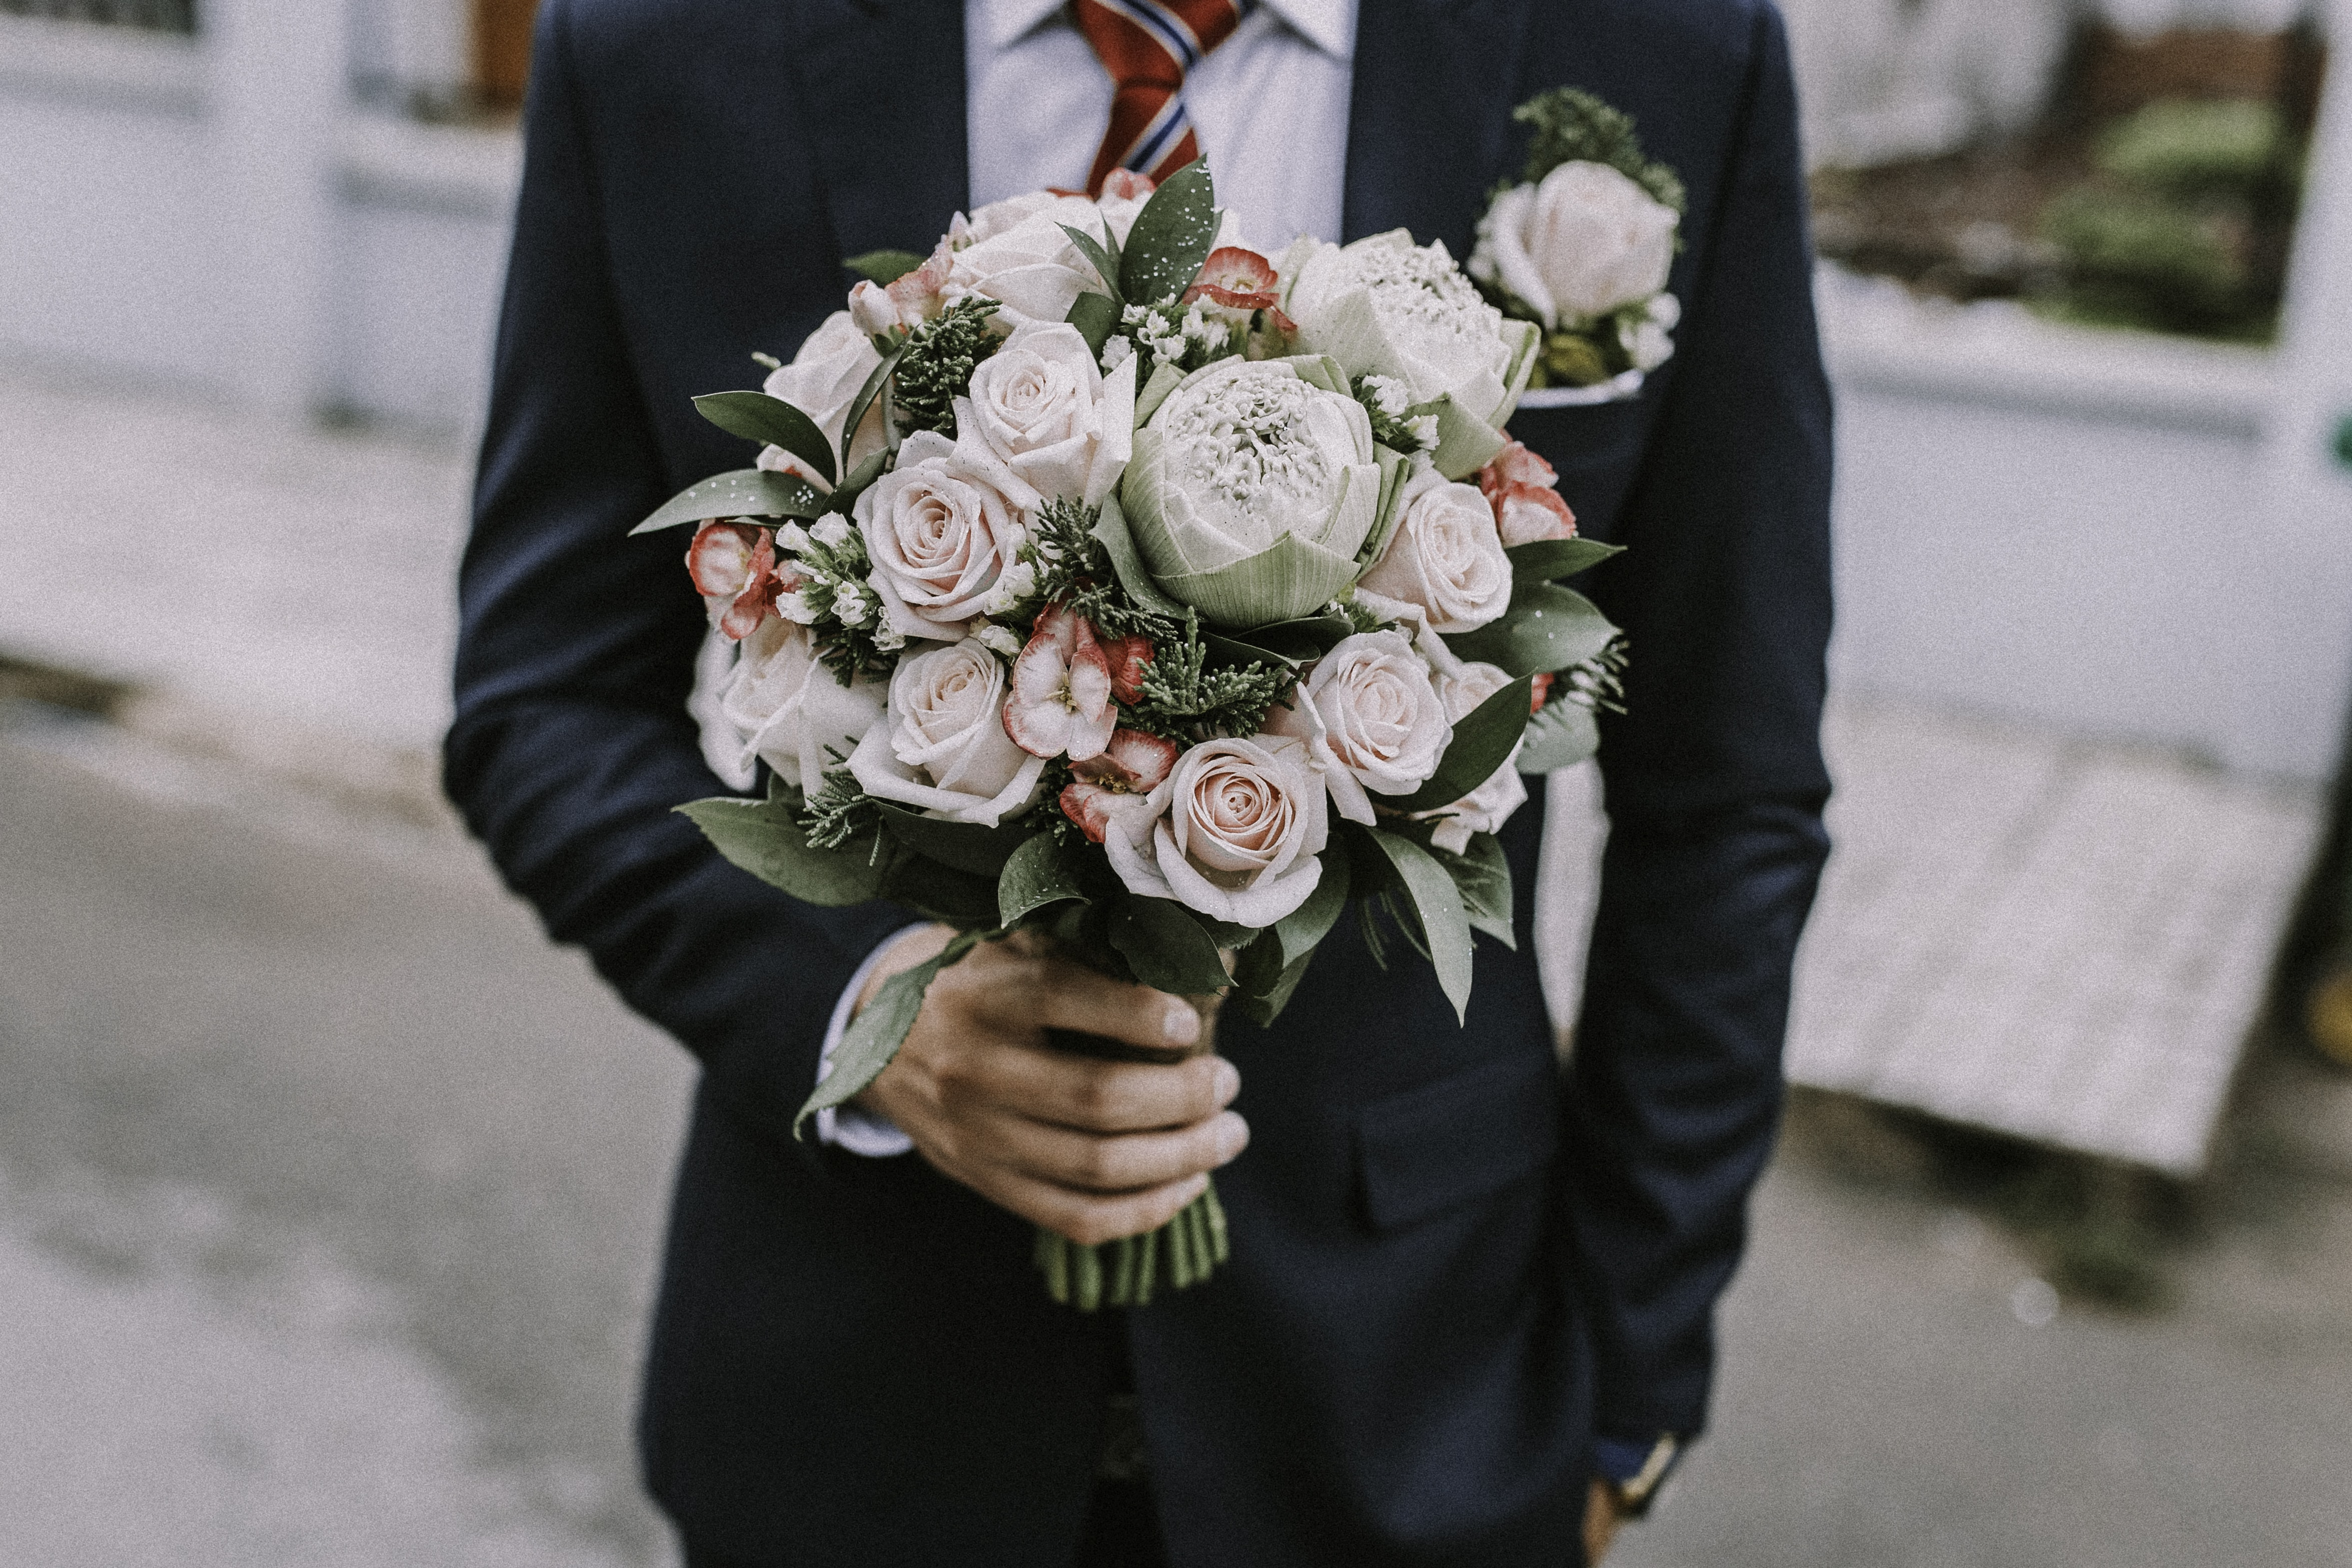 man holding a rose bouquet